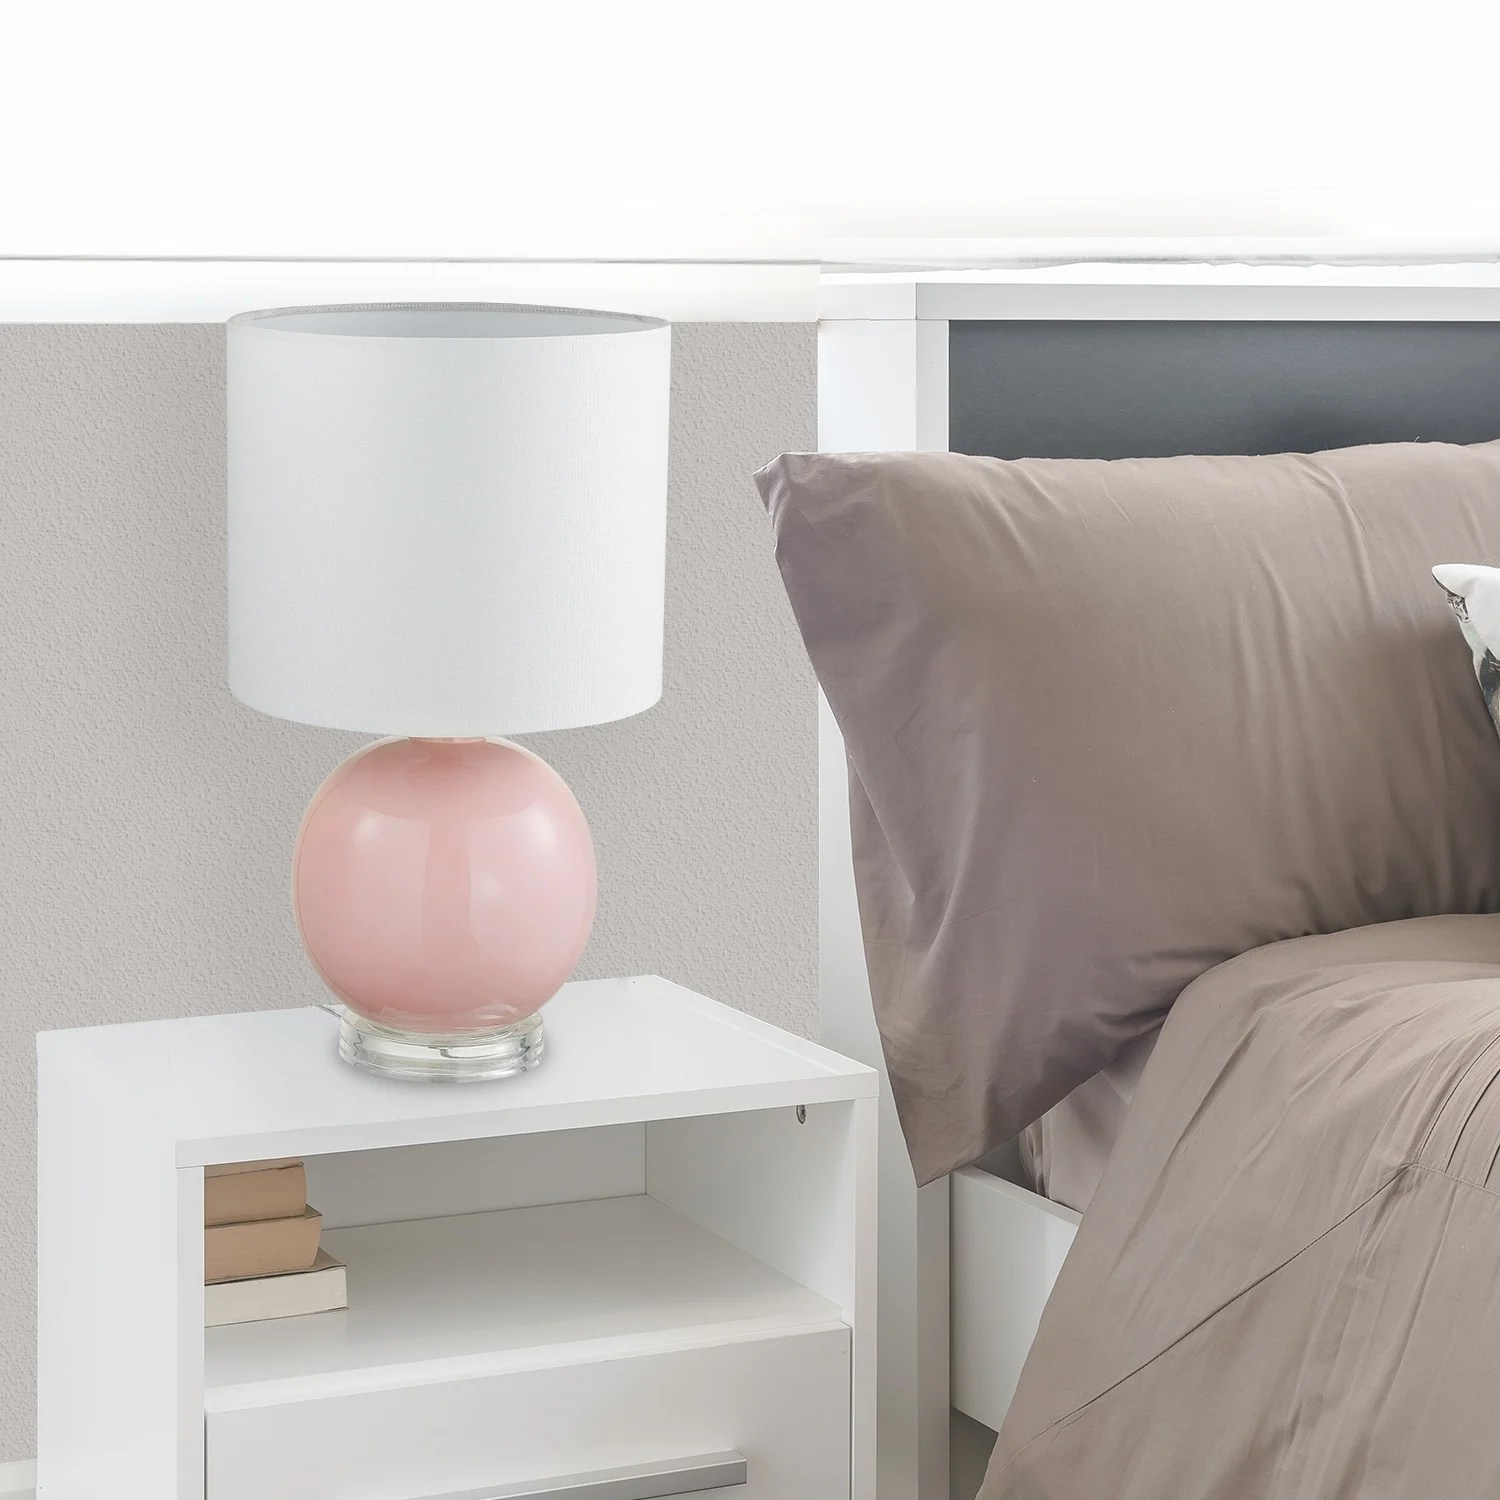 Shop Black Friday Deals On Porch Den Rockrose Blush Pink 18 Inch Table Lamp With White Fabric Shade Overstock 30534029